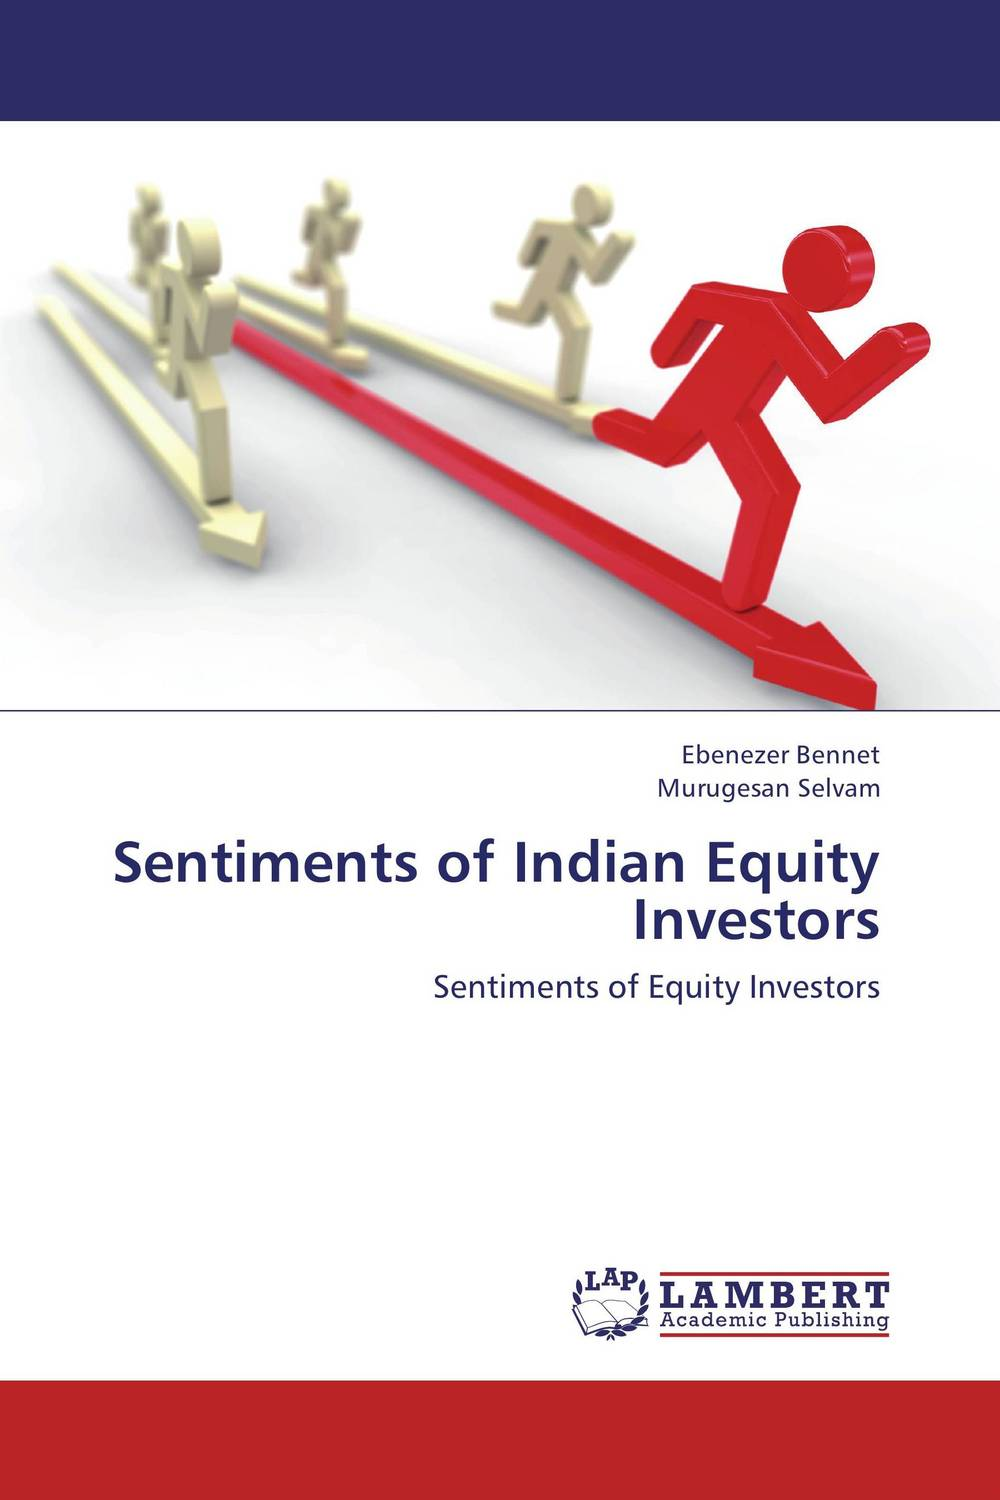 Sentiments of Indian Equity Investors